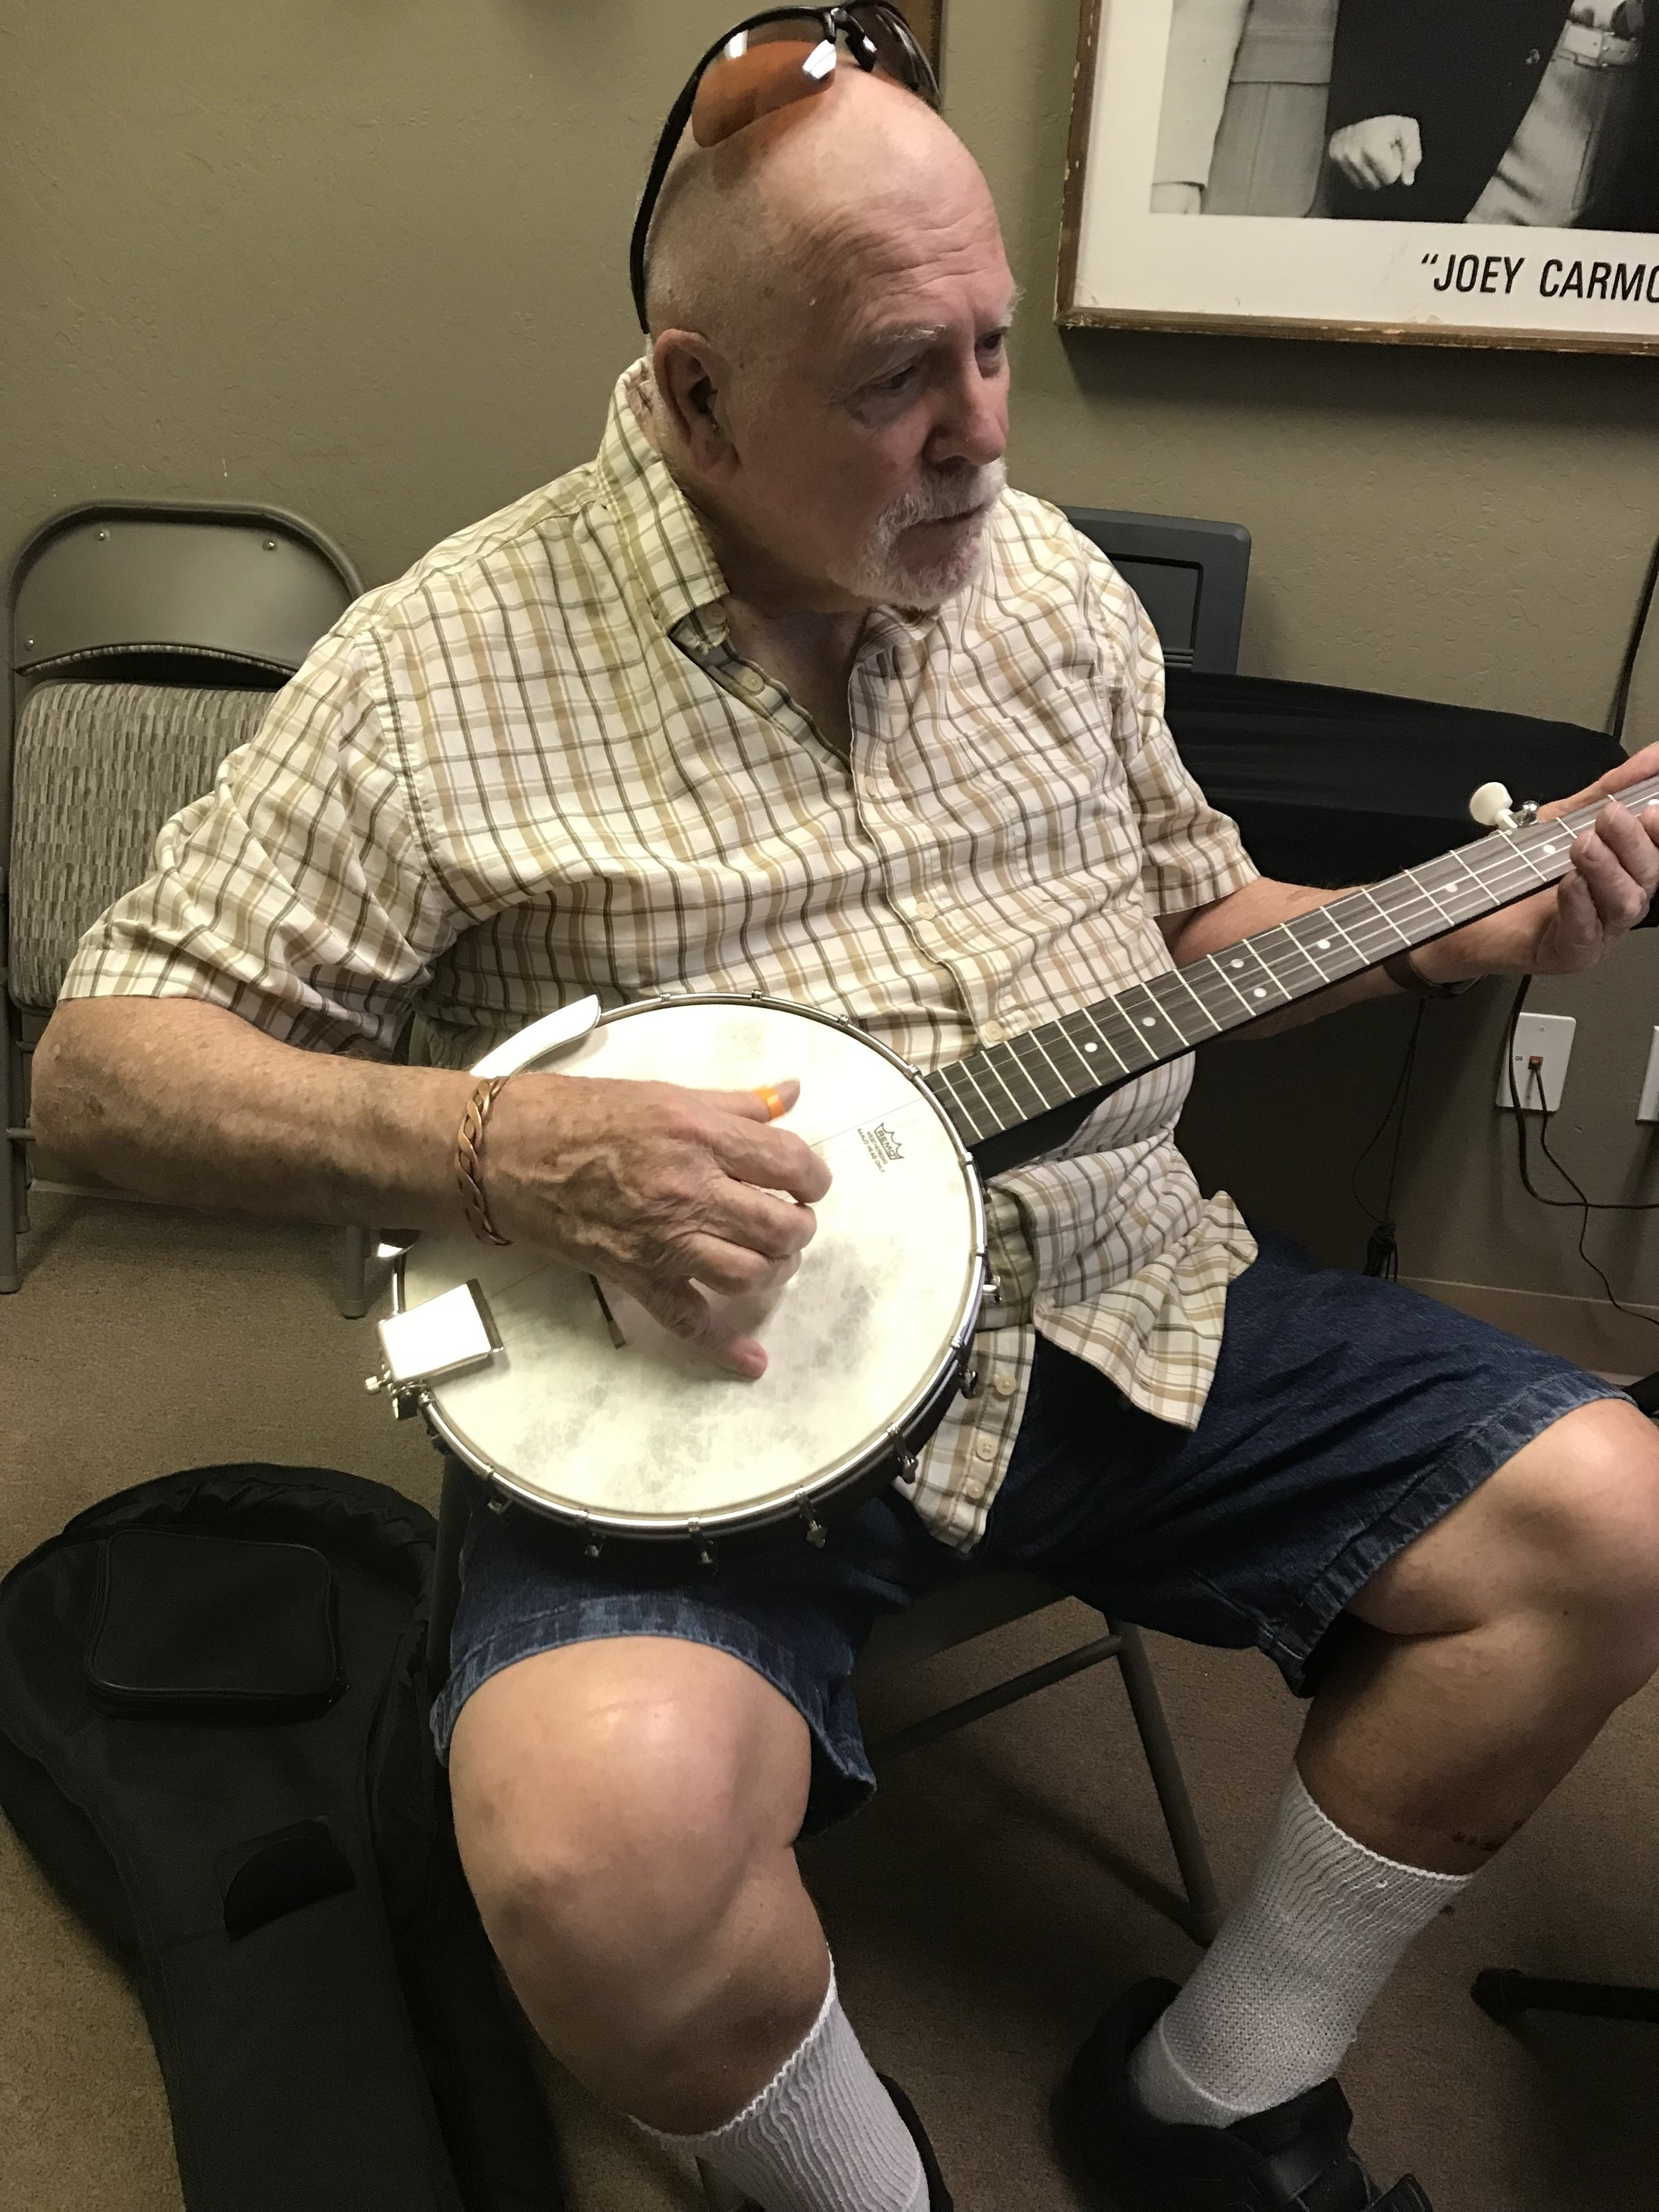 Clyde Johnson at 82 years old is still learning banjo licks!